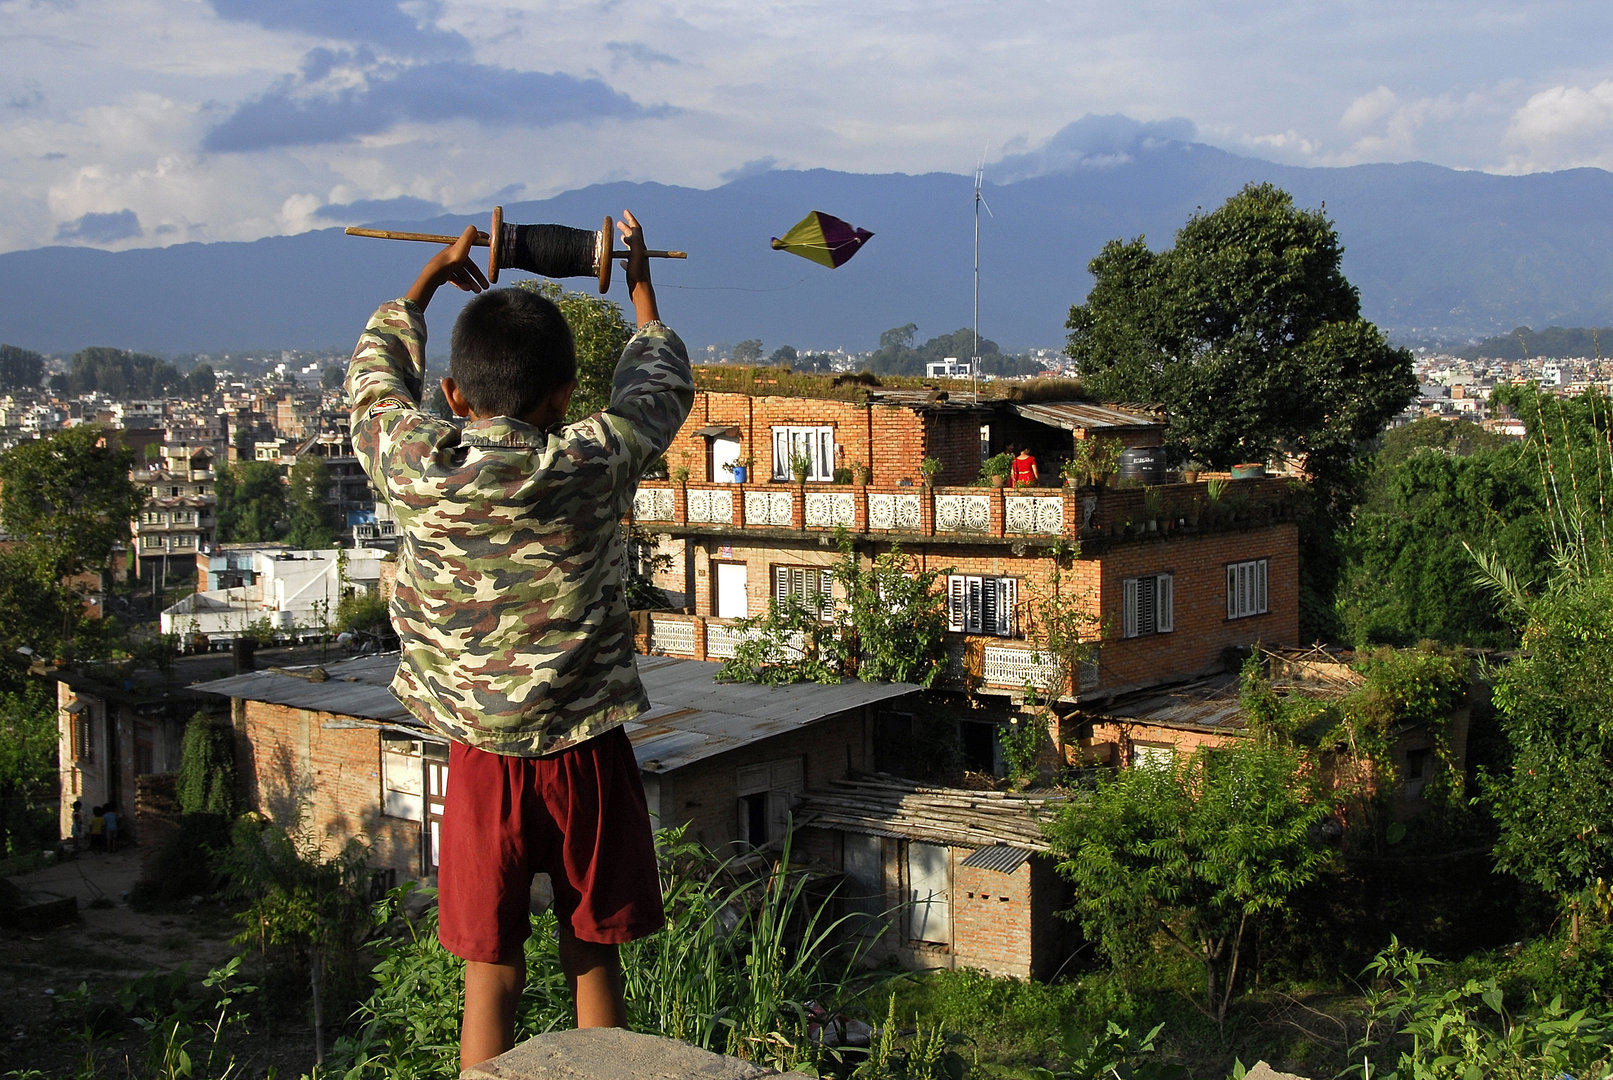 Flying kite in Kathmandu Valley